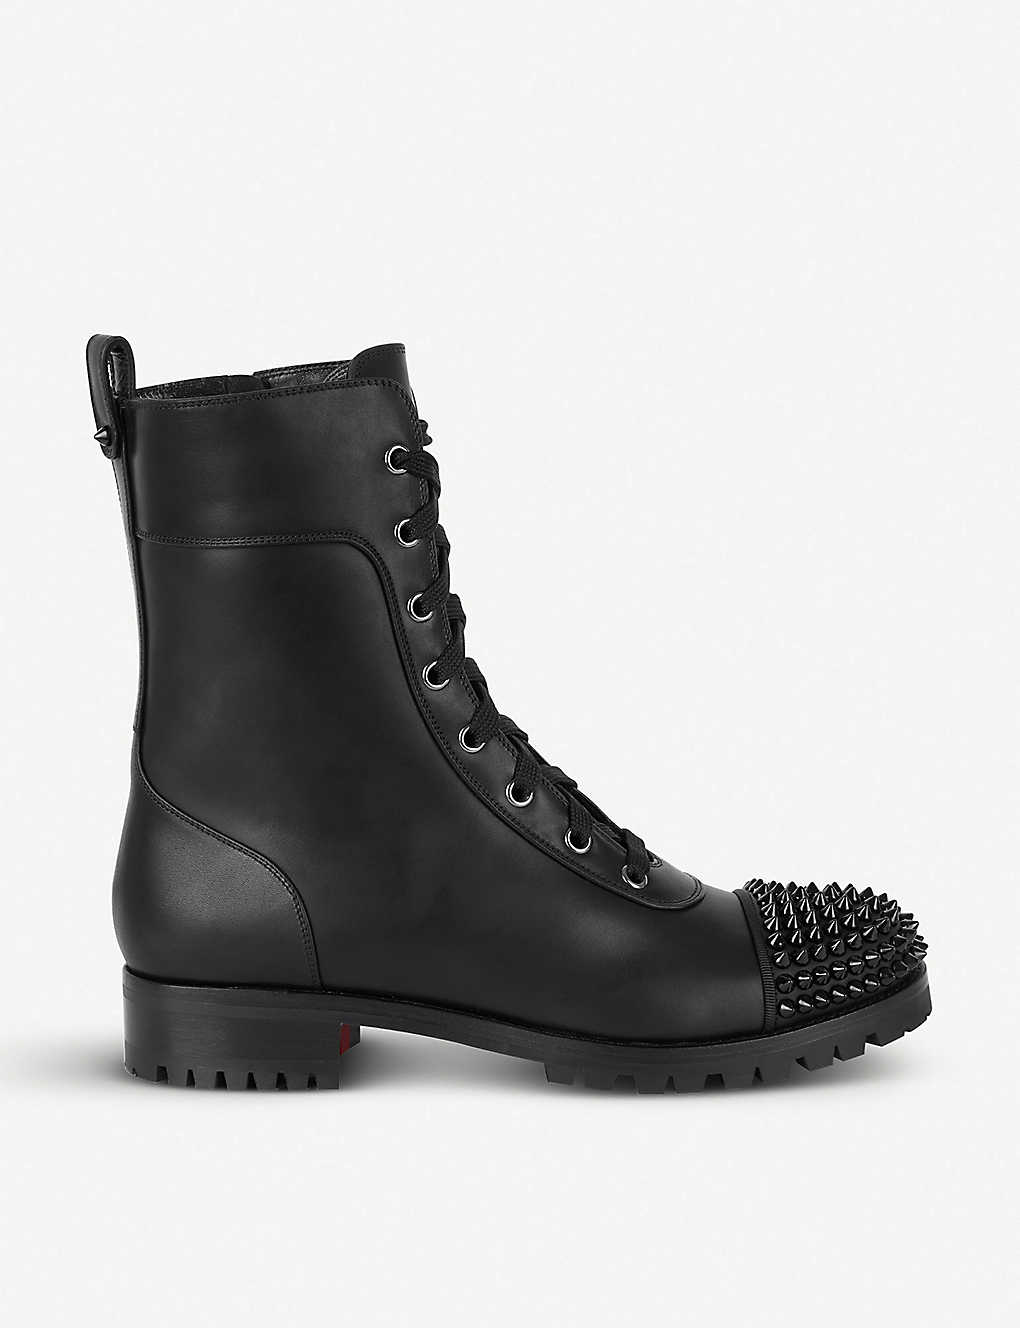 superior quality 45ecd cd879 Studded toe cap leather boots